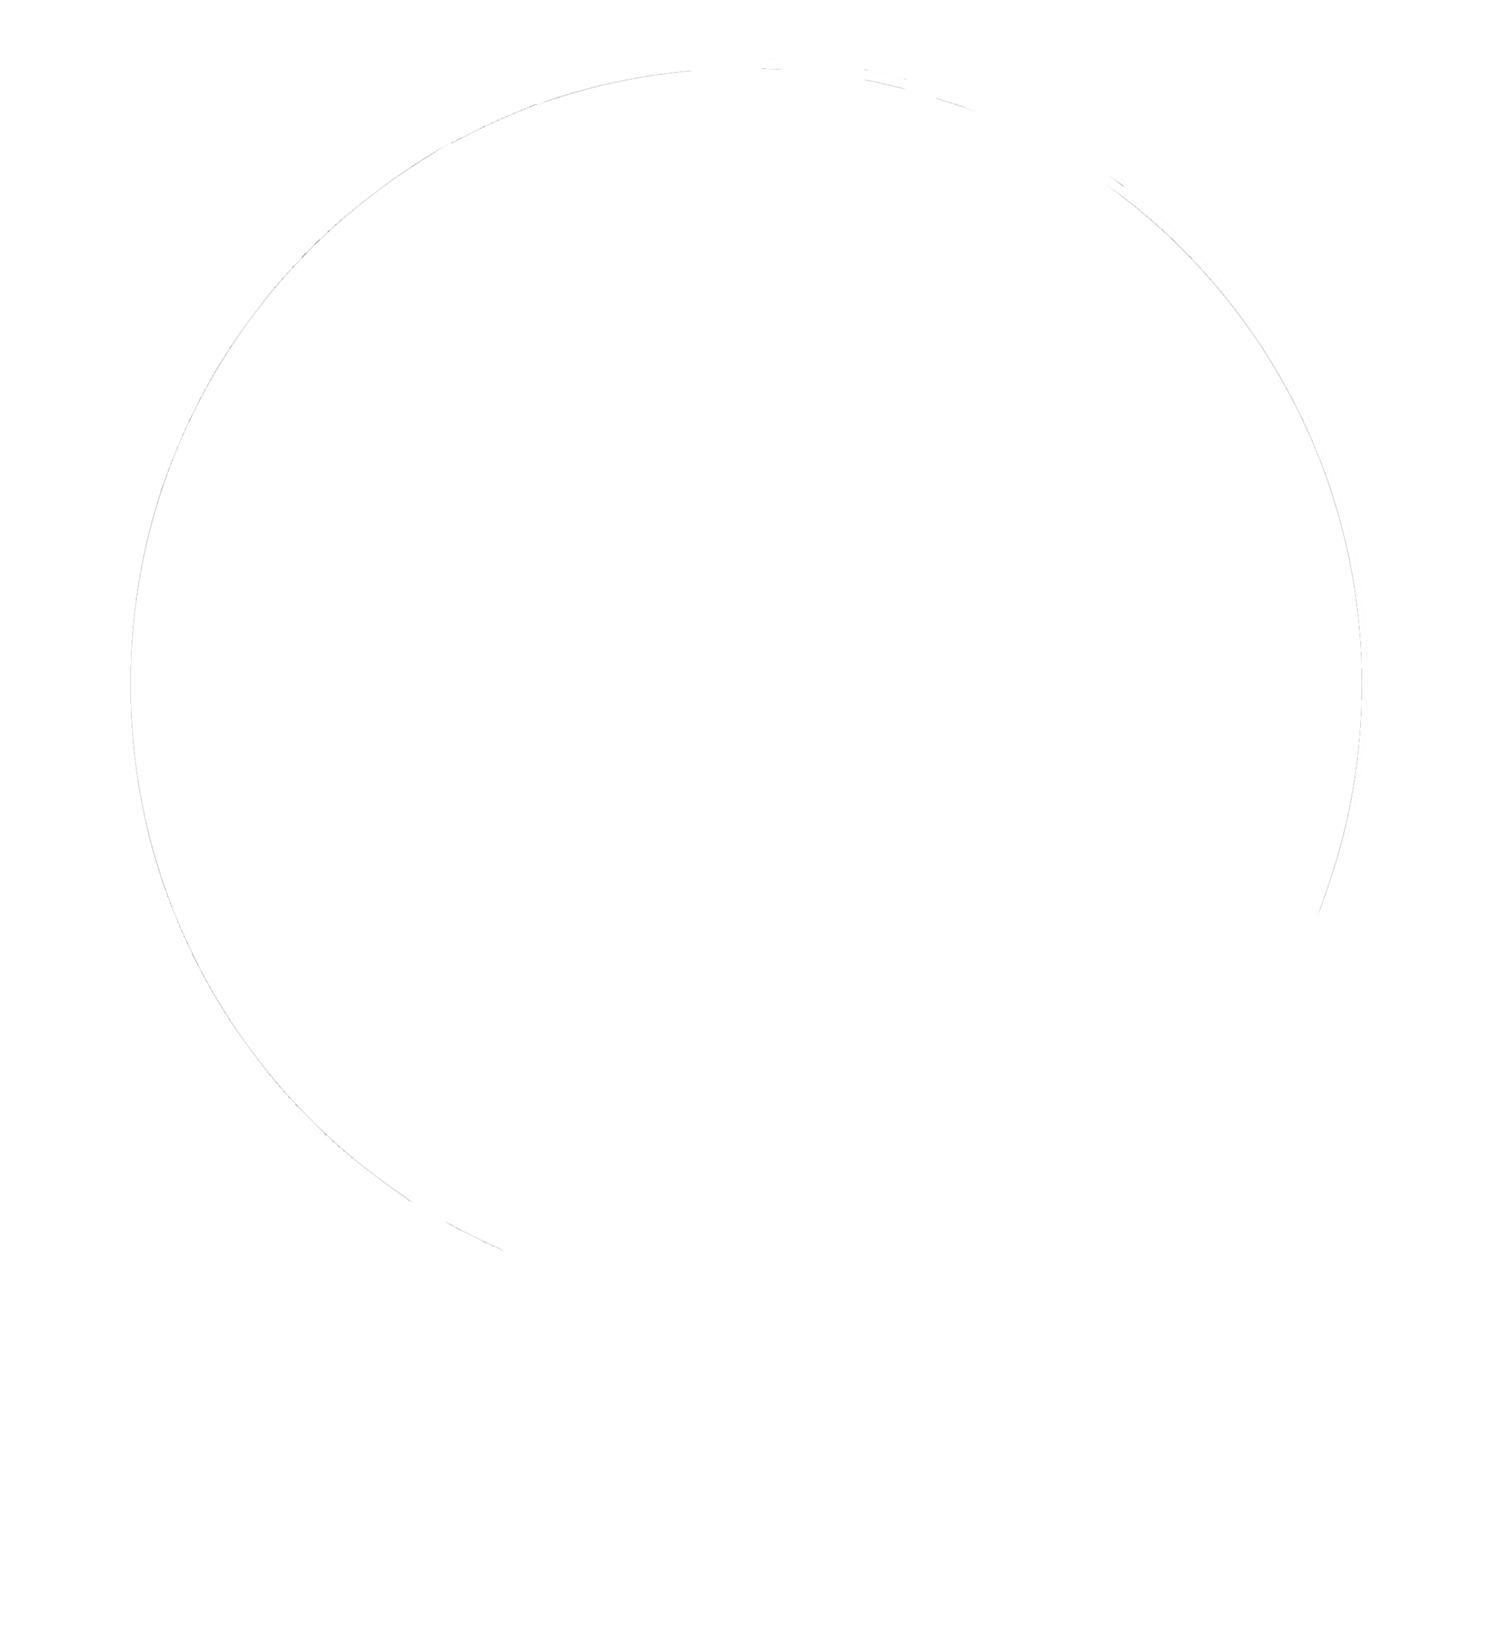 Western Hills Christian Church